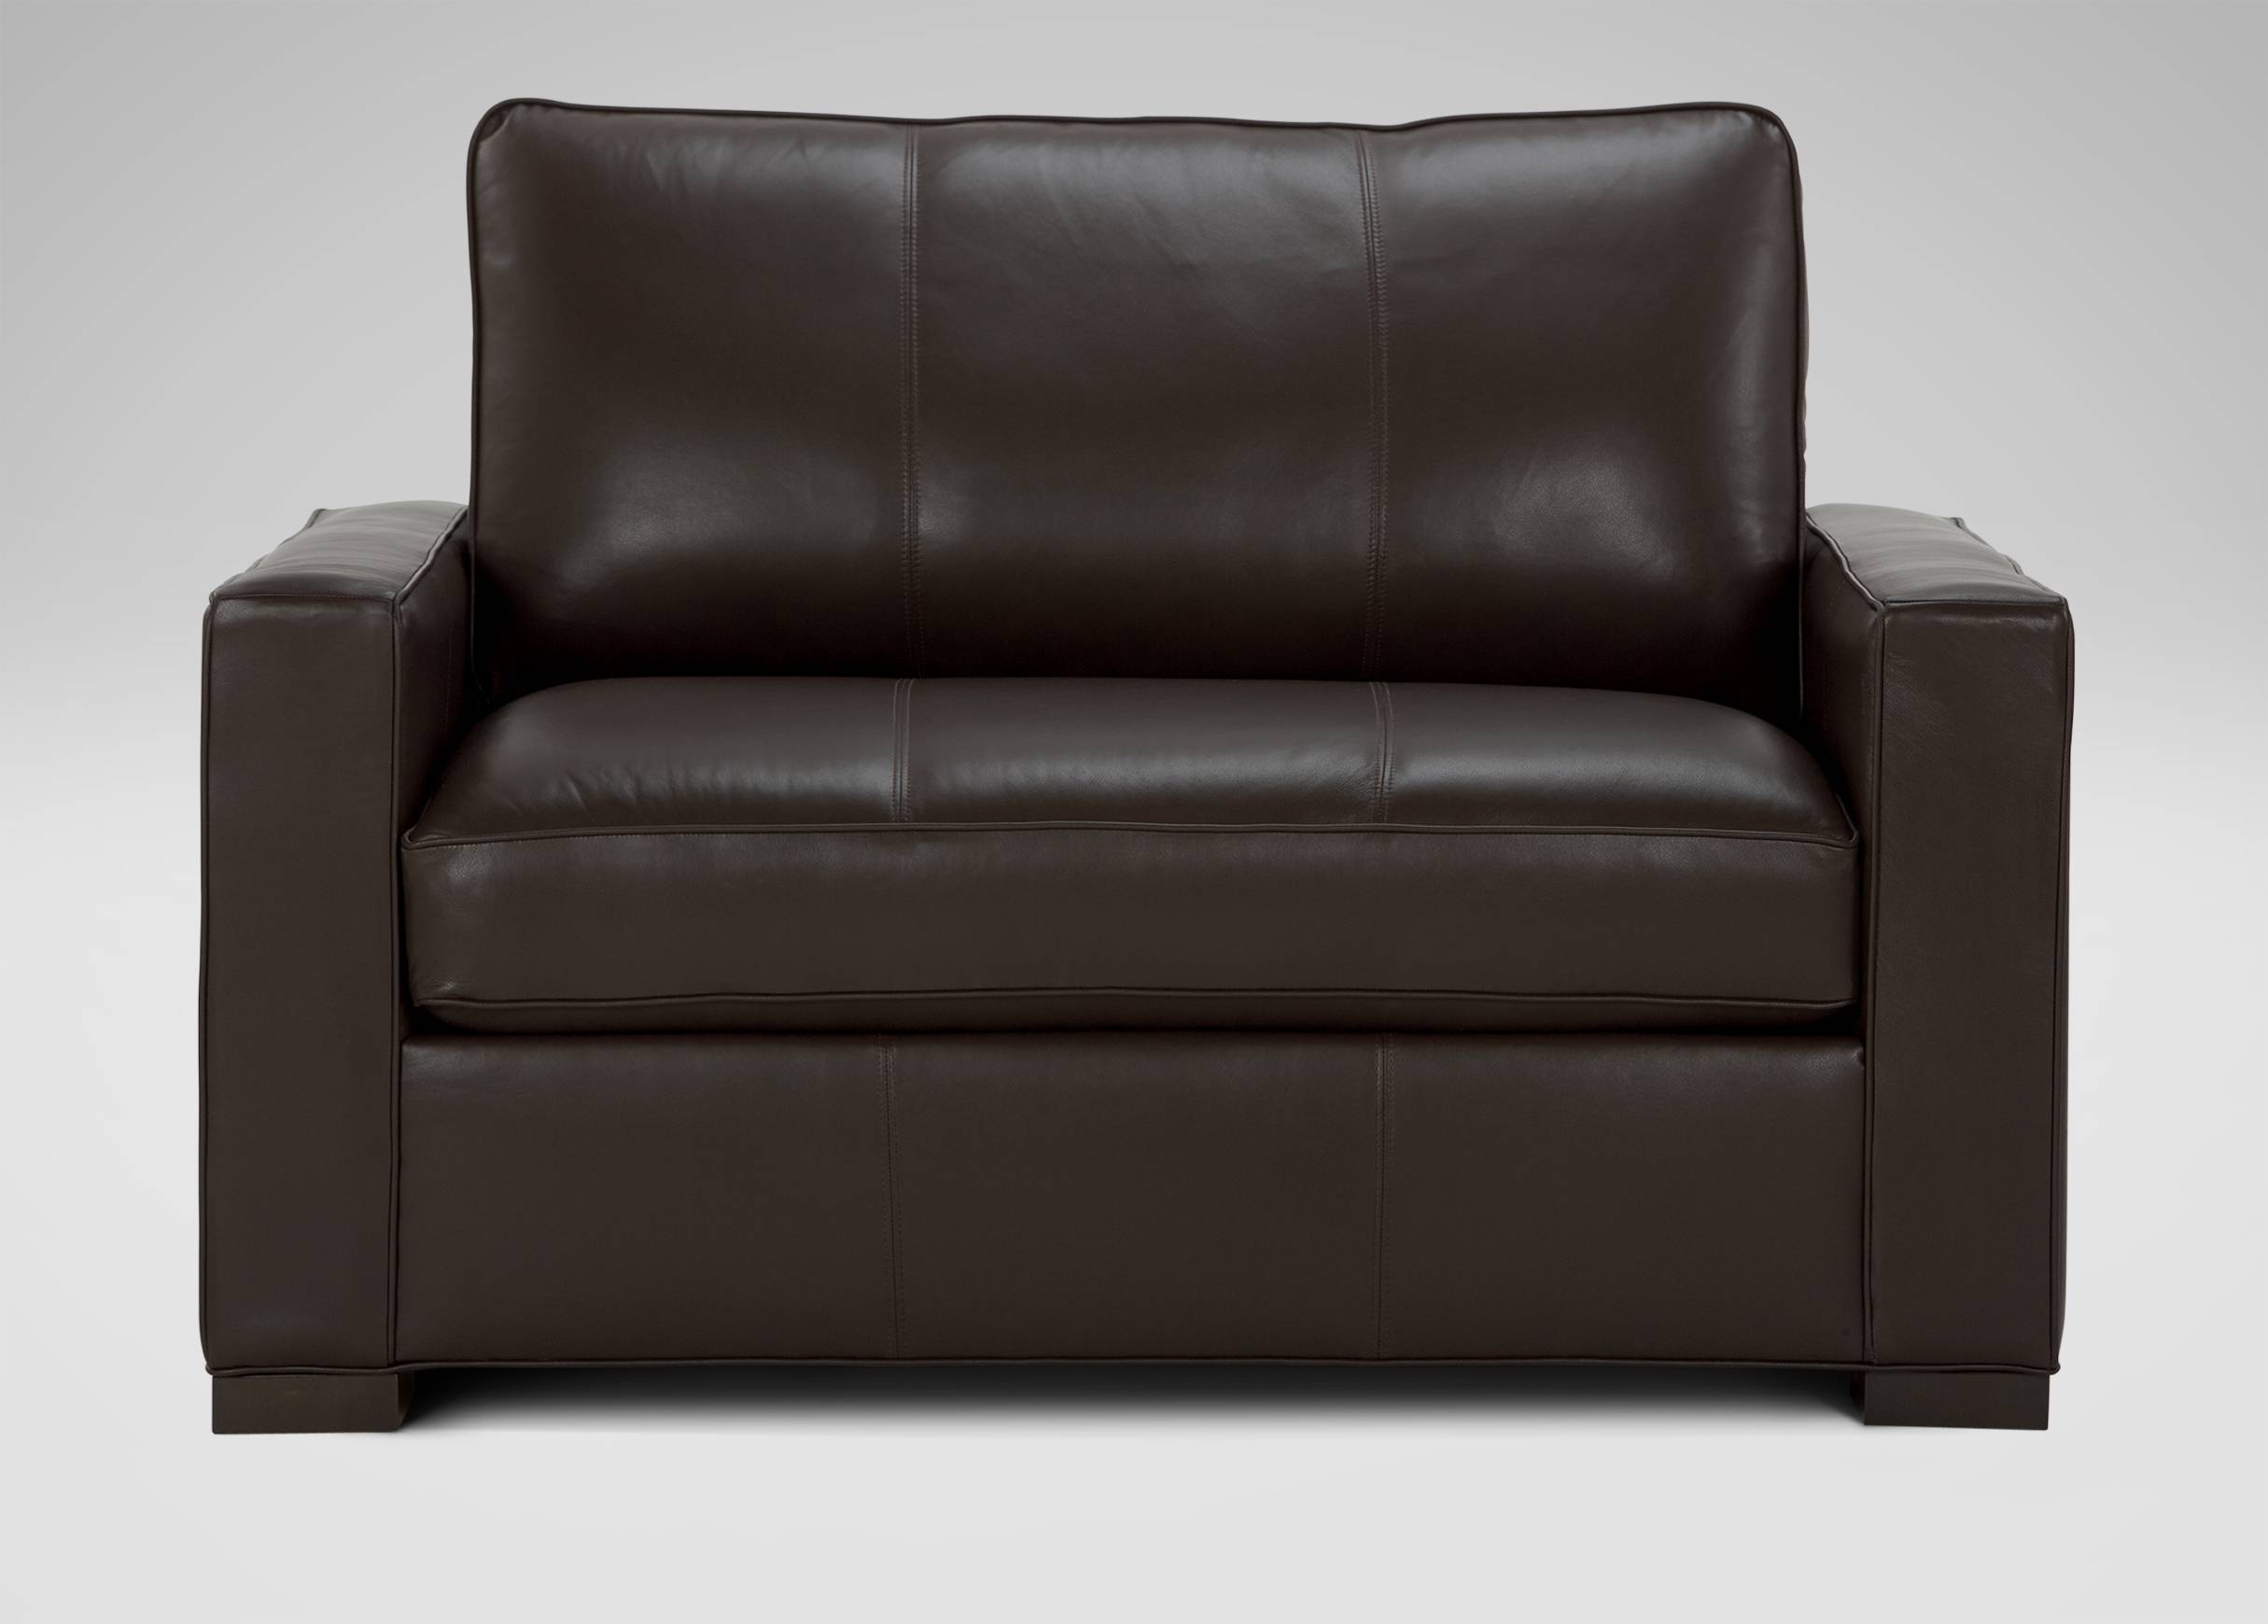 Furniture: Ethan Allen Leather | Ethan Allen Leather Furniture pertaining to Ethan Allen Whitney Sofas (Image 6 of 15)